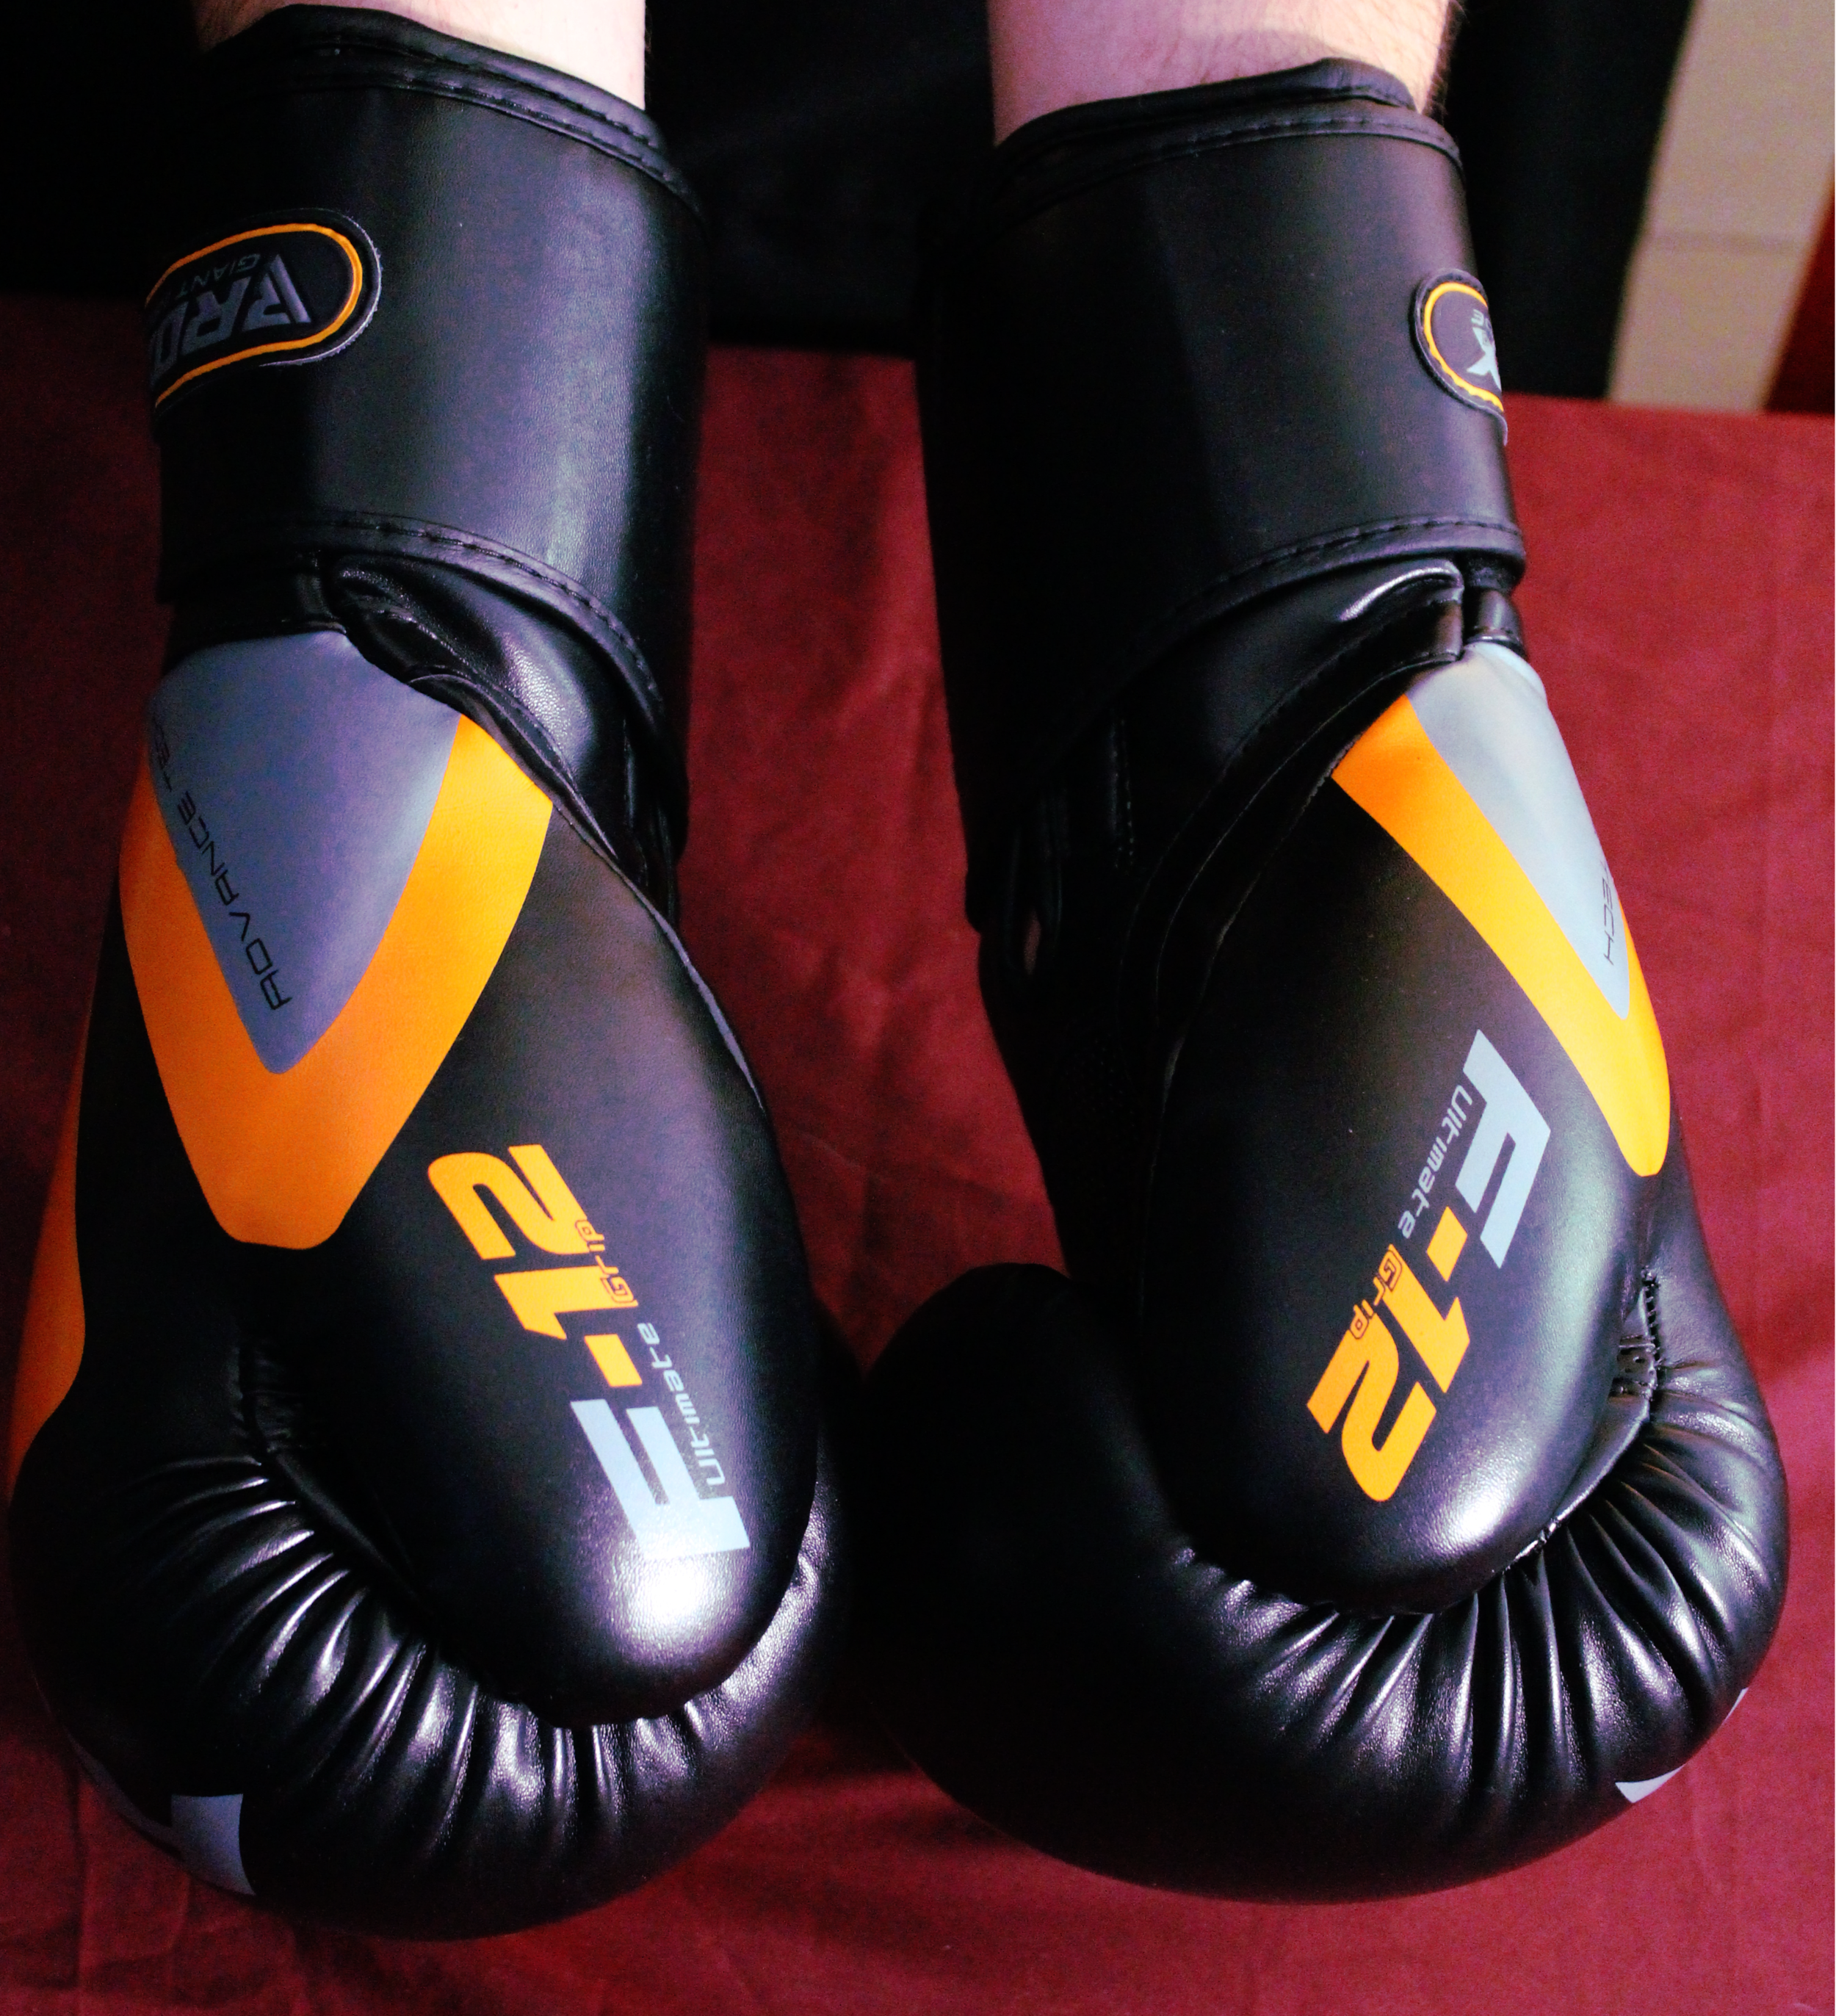 The Killing Cure (The Jerusalem Brawl) - The Speculation Station - Muay Thai Sparring Gloves